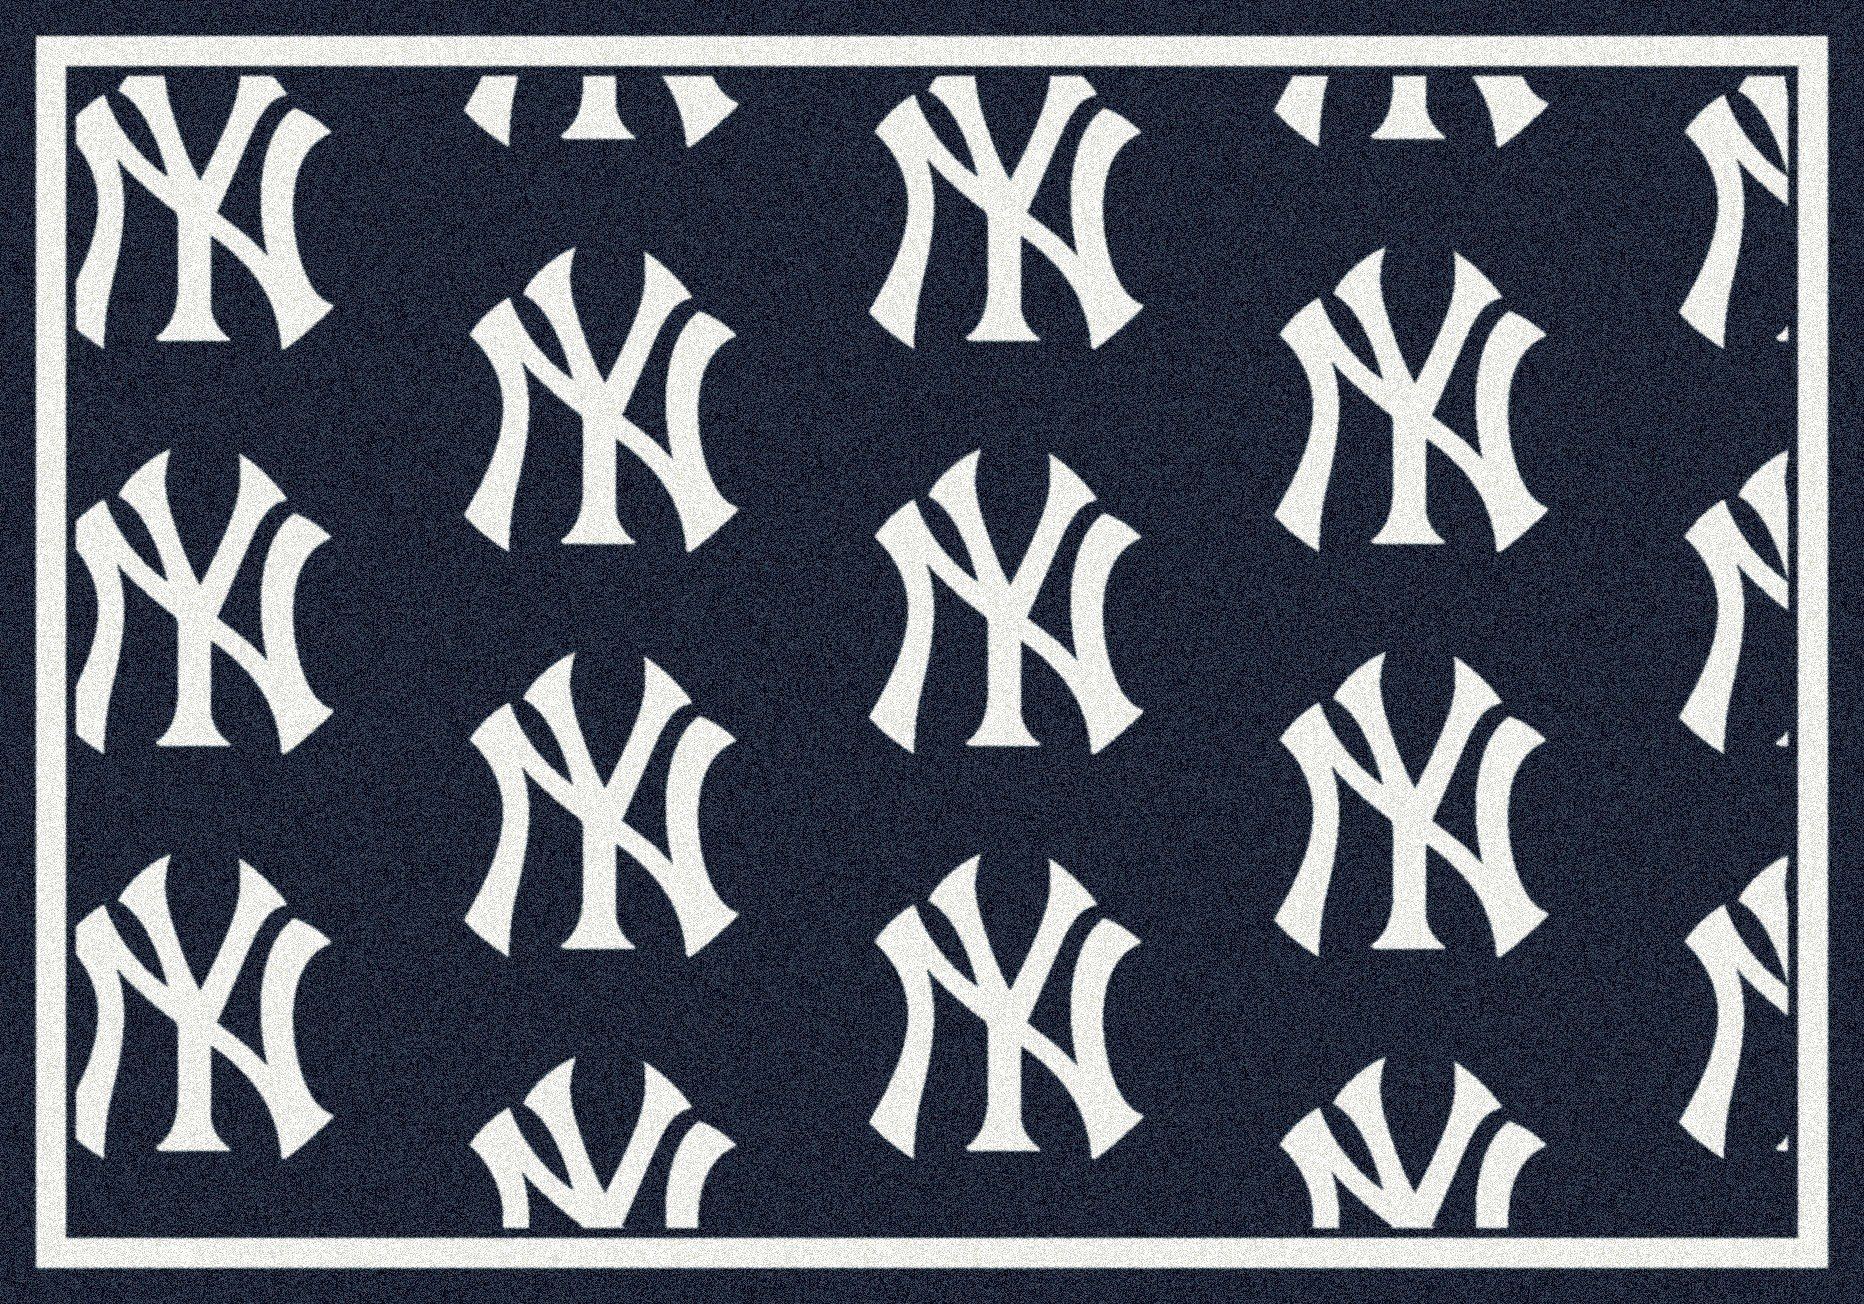 NEW YORK YANKEES baseball mlb fk wallpaper background 1864x1304